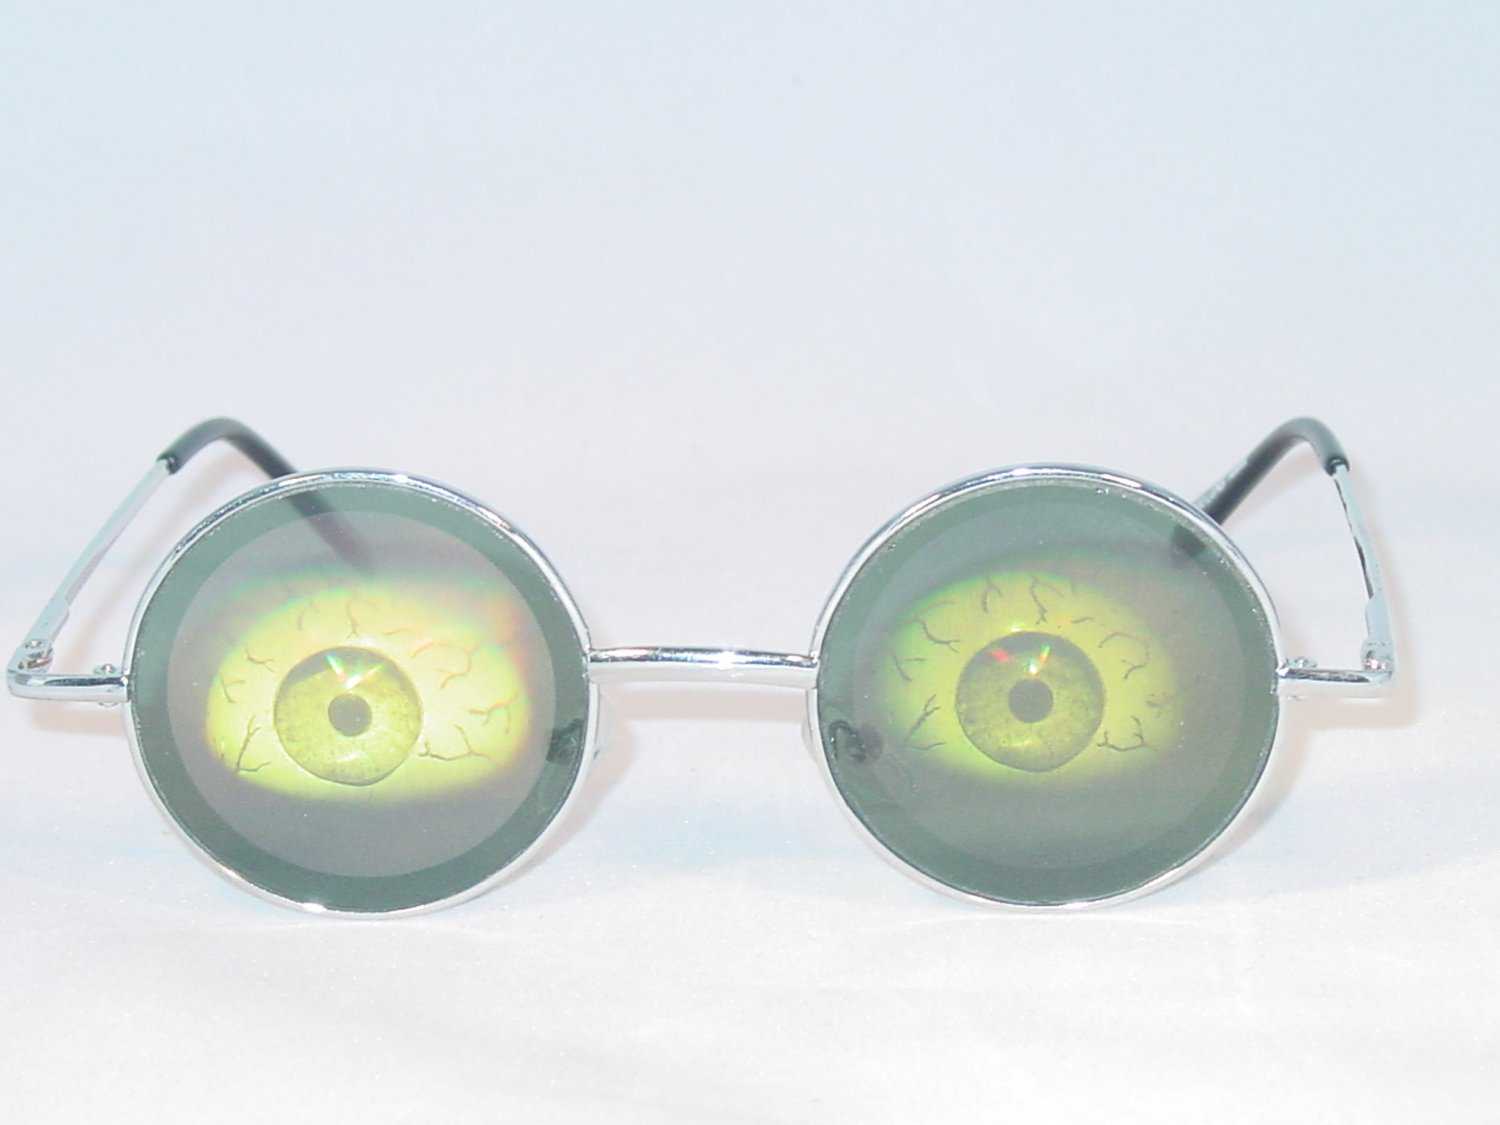 CRAZY EYEBALL TEXAS HOLDEM WSOP HOLOGRAM SUNGLASSES